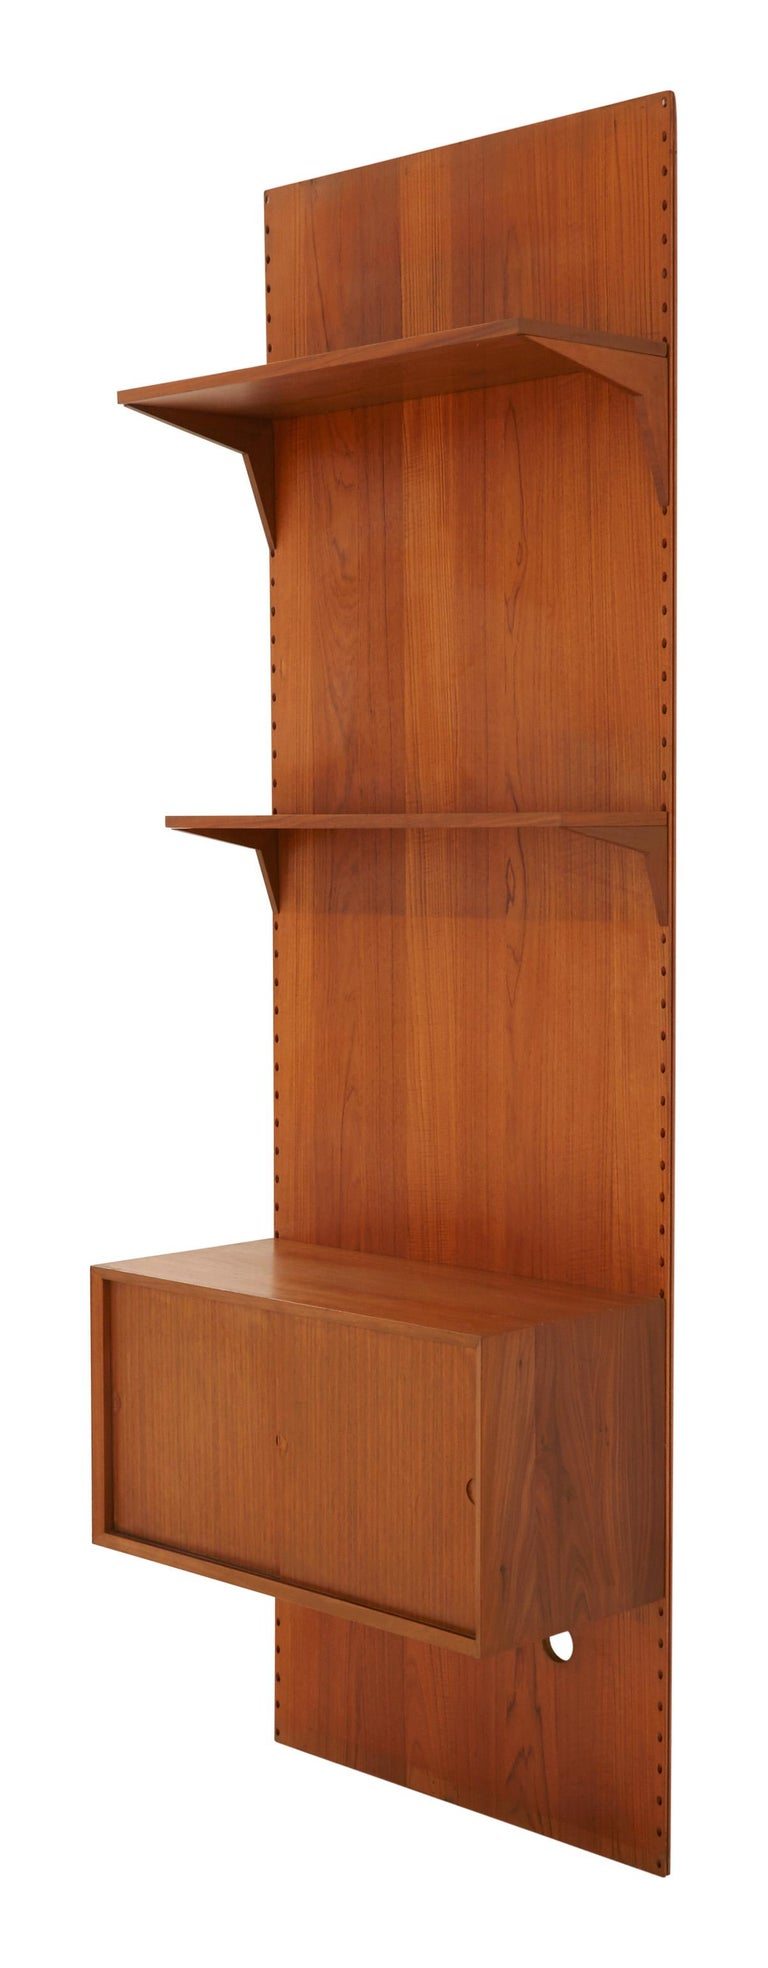 •Mid-20th century